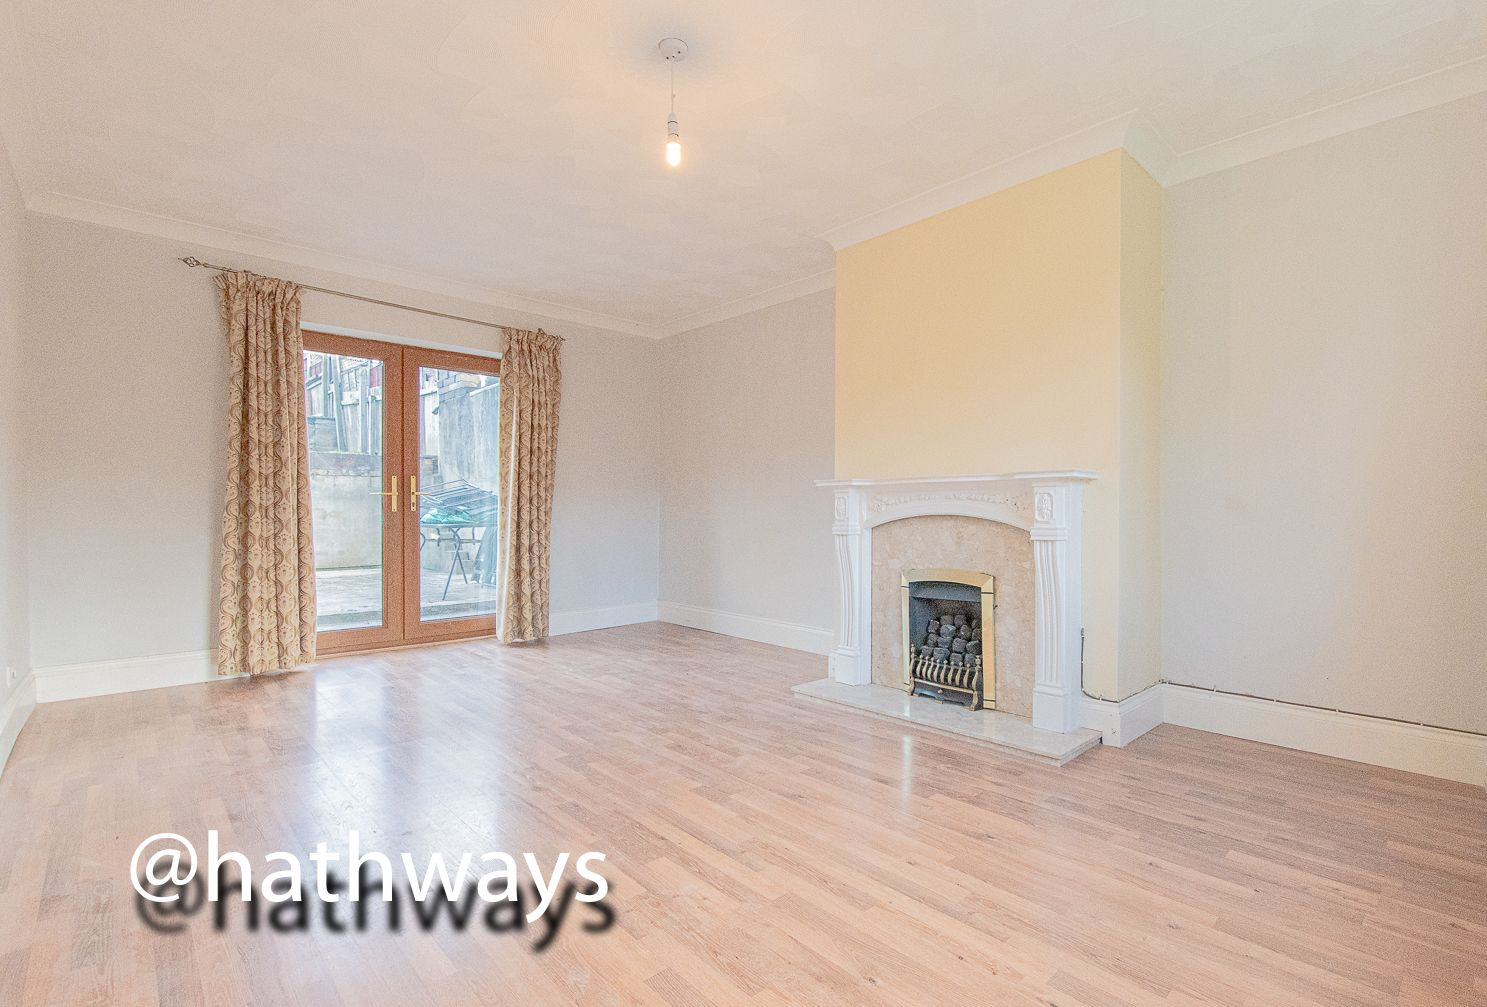 3 bed house for sale in Manor Road  - Property Image 9